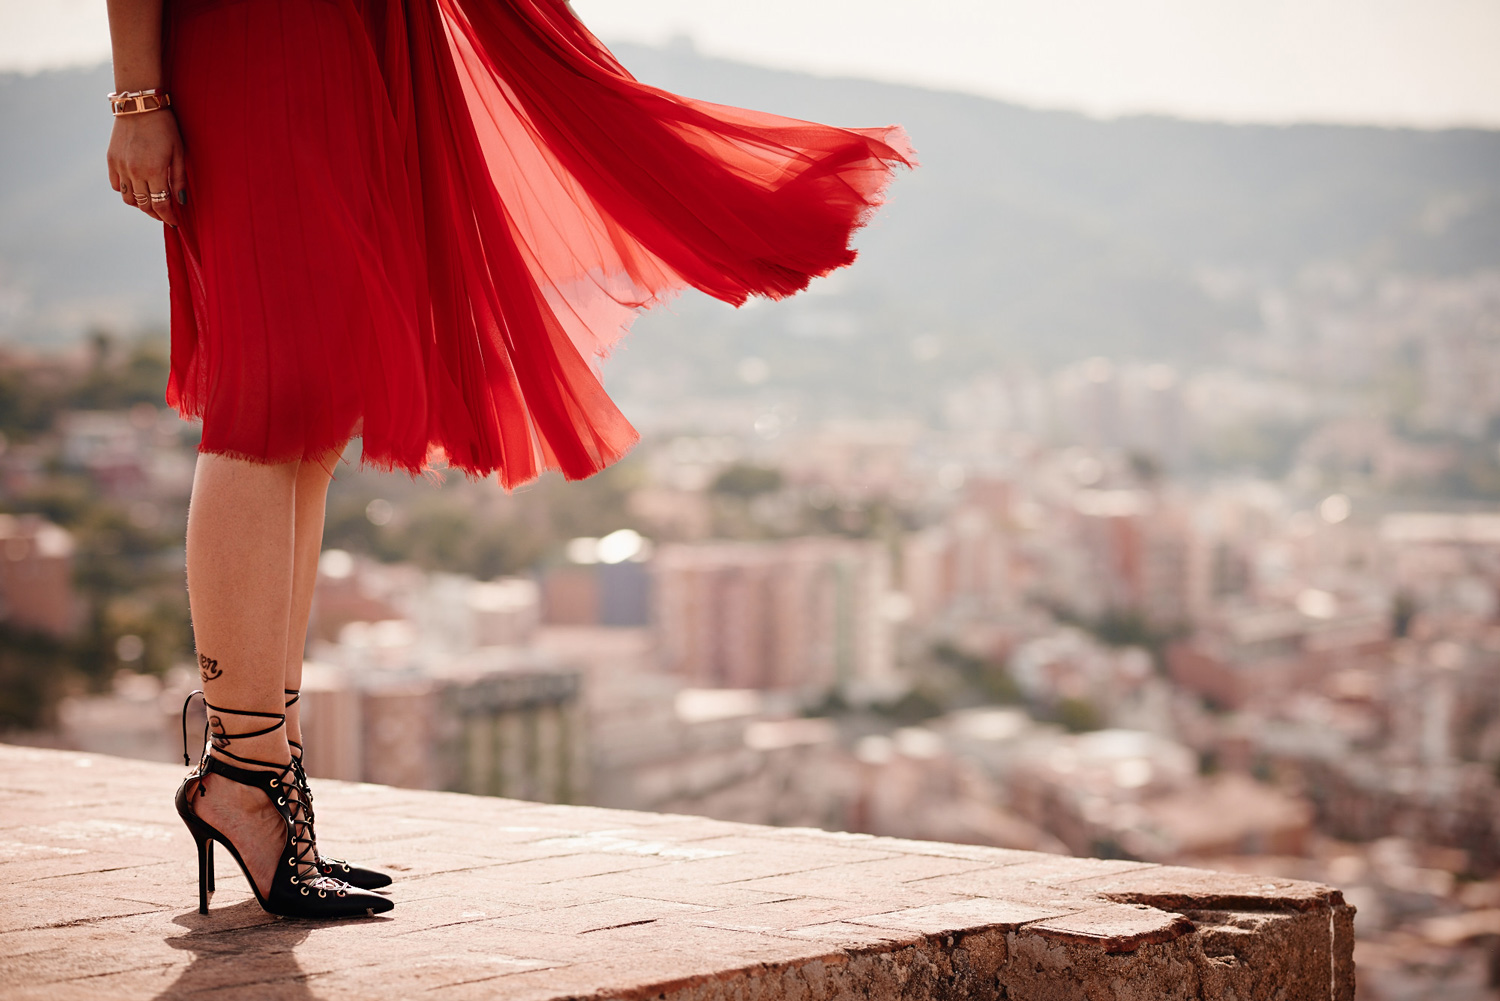 the lady in red | editorial fashion shooting in Barcelona with a view | red carpet dress from Dawid Tomaszewski and lace up heels from Elisabetta Franchi | style blogger Masha Sedgwick from Germany